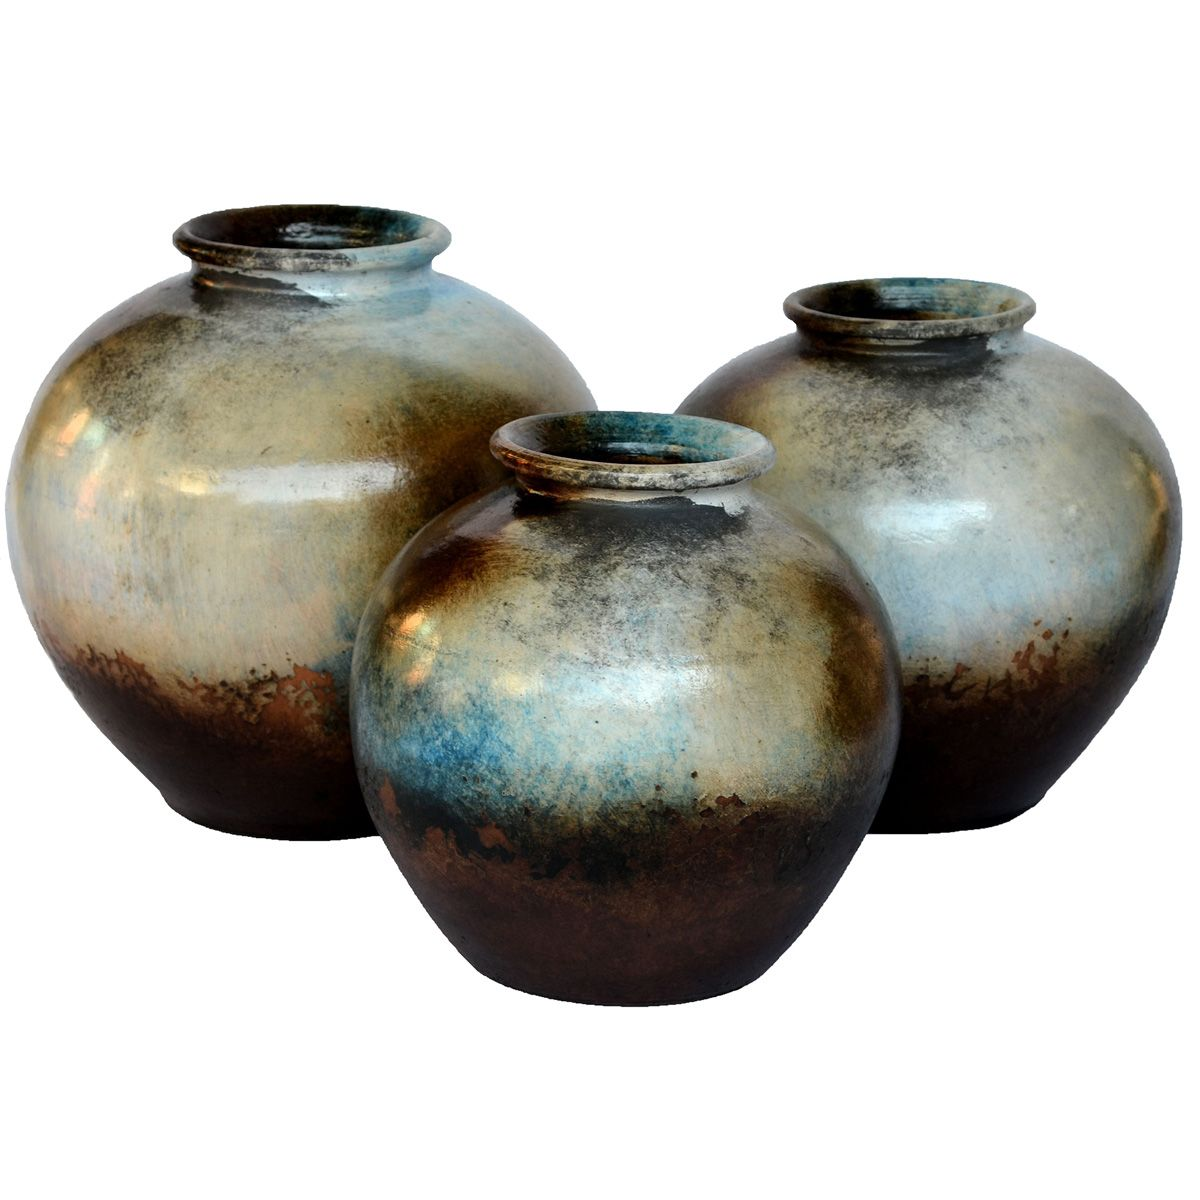 Olla Brown Vases - Set of 3